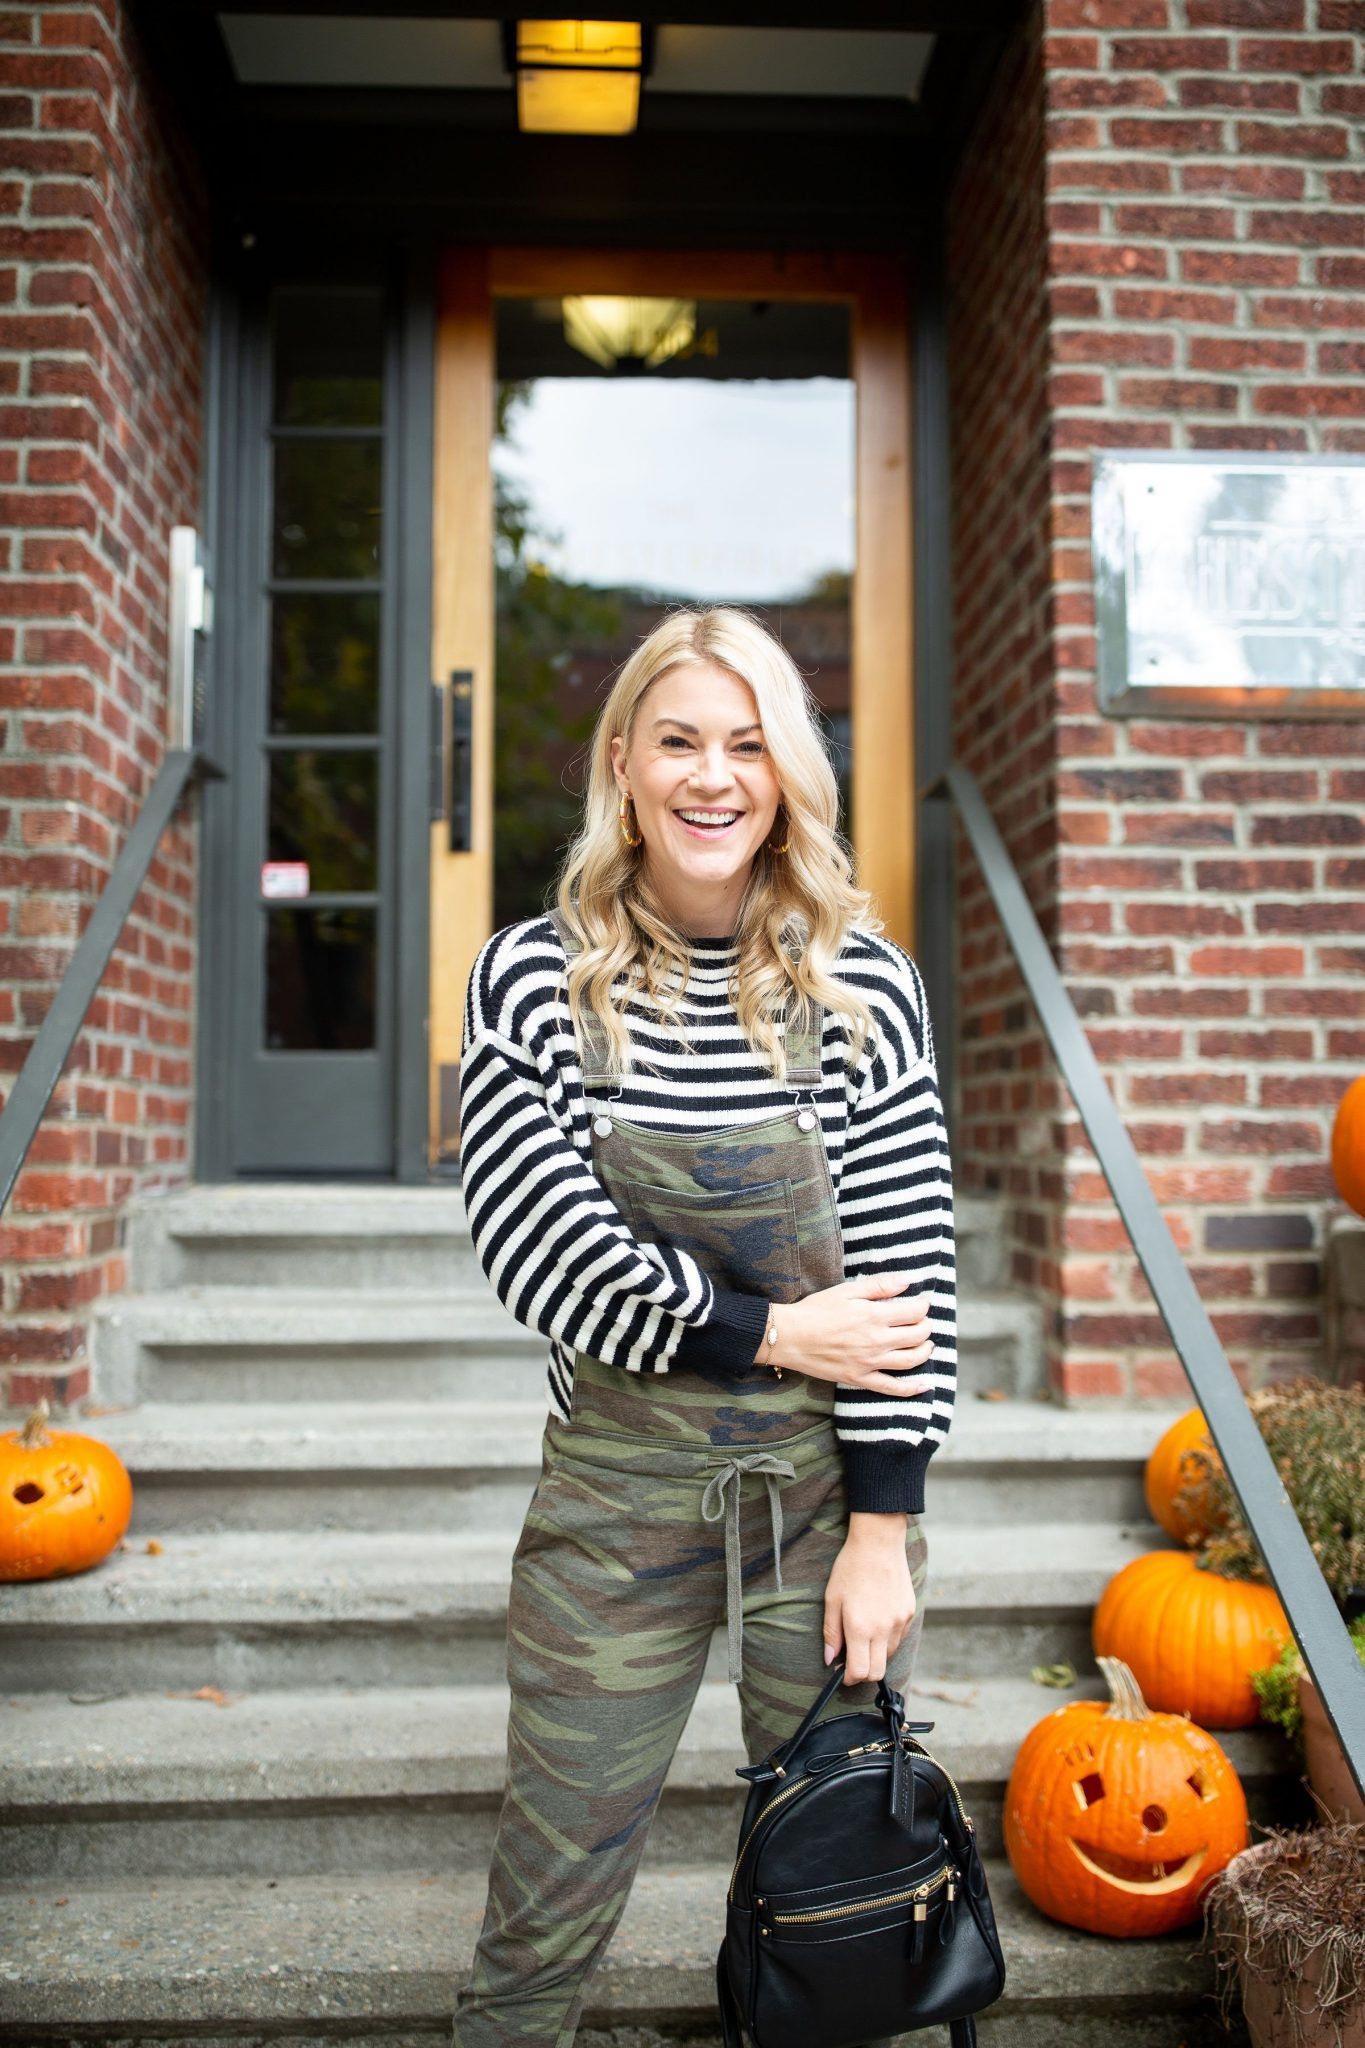 Camo Overalls by popular Seattle tall fashion blog, Whit Wanders: image of a woman sitting on some stairs while holding a pumpkin and wearing a black and white sweater with a pair of camo overalls.